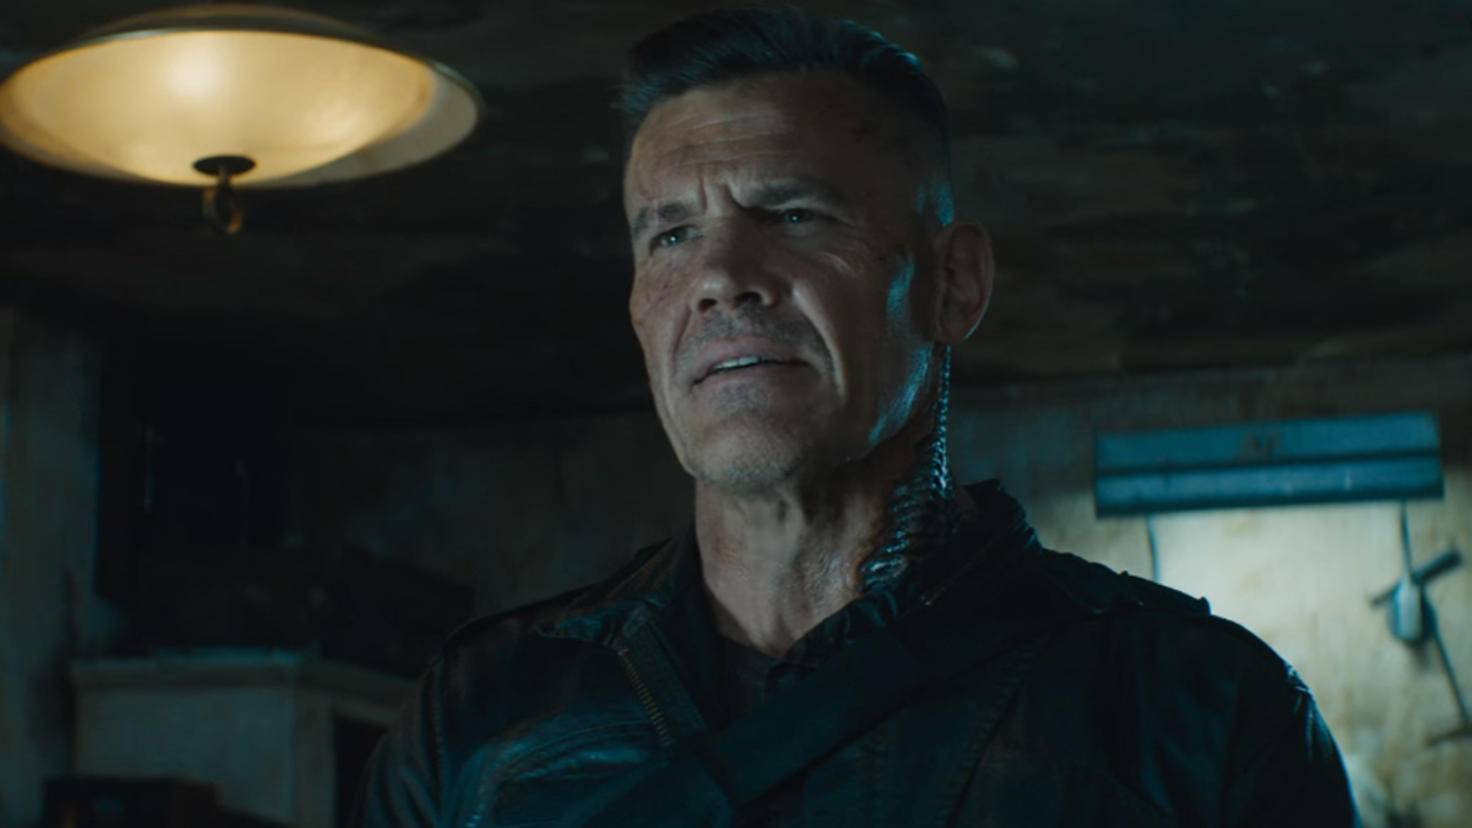 Josh Brolin Cable Deadpool 2 YouTube 20th Century Fox